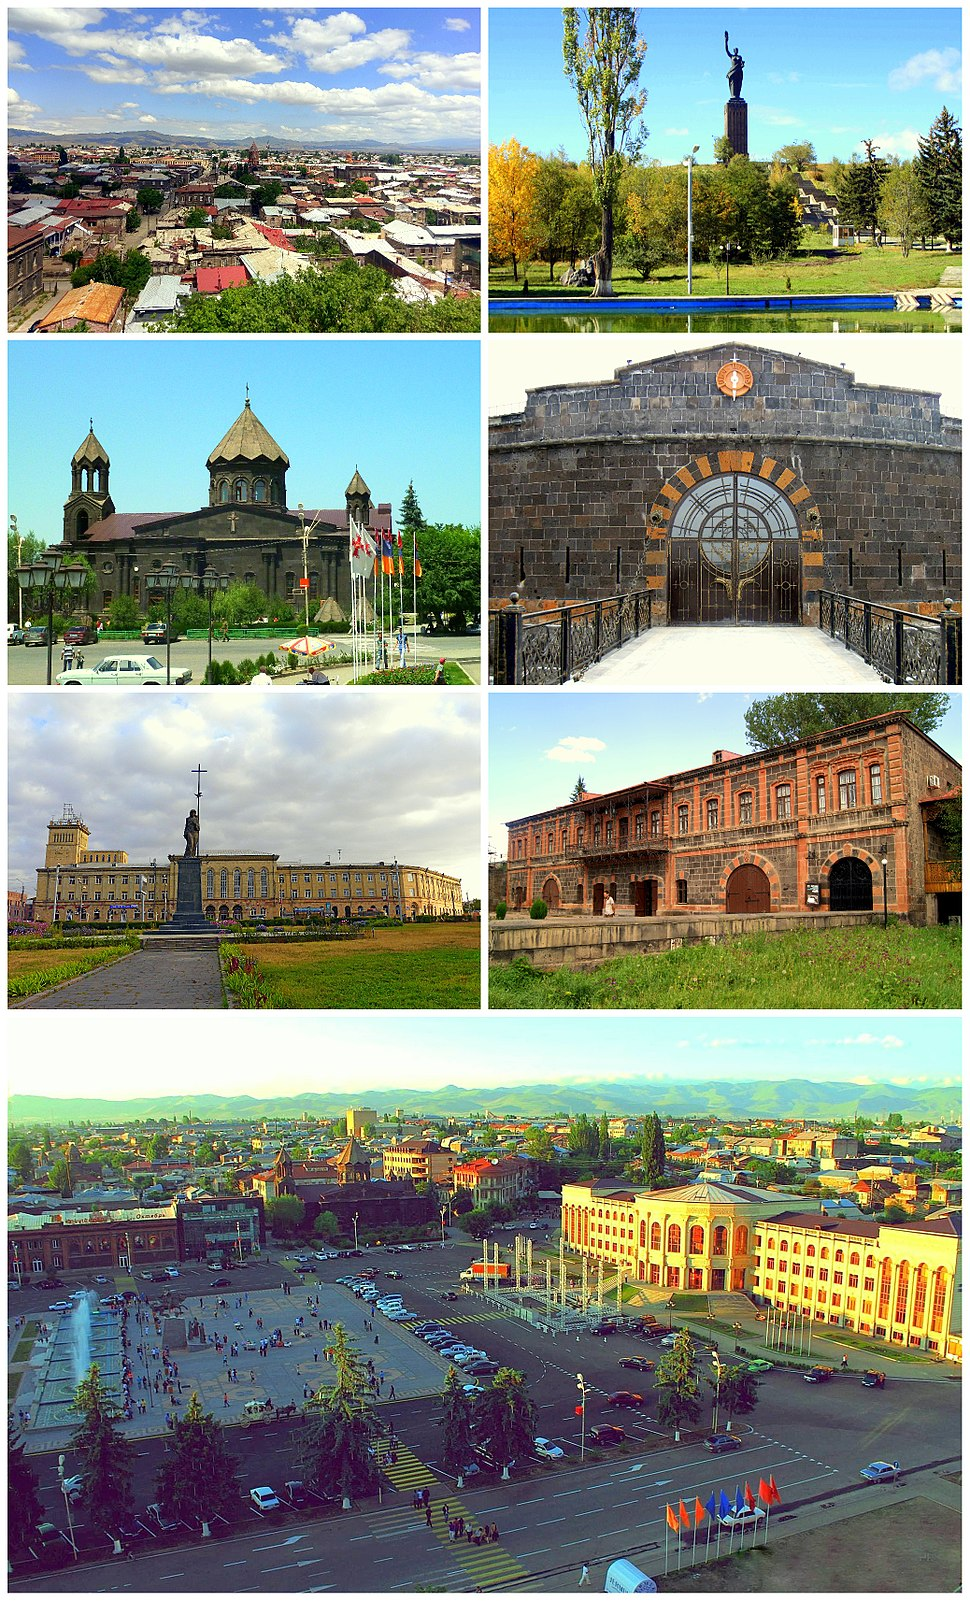 From top left: Gyumri skyline • Mother Armenia Cathedral of Gyumri • Sev Berd Fortress Independence Square • Dzitoghtsyan Museum Vartanants Square and Gyumri City Hall